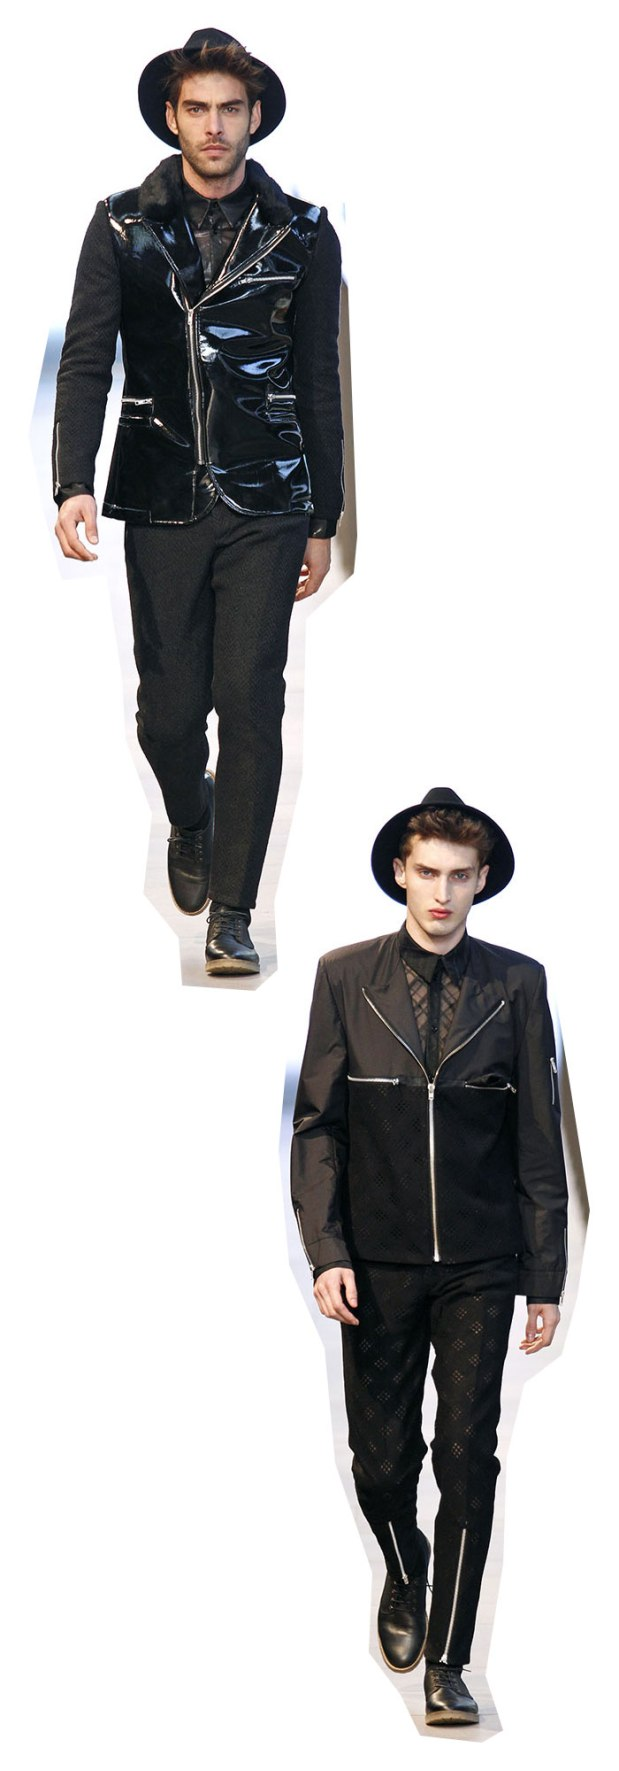 selim-de-somavilla-080-barcelona-fashion-fw2014-2015-unisex-collection-modaddiction